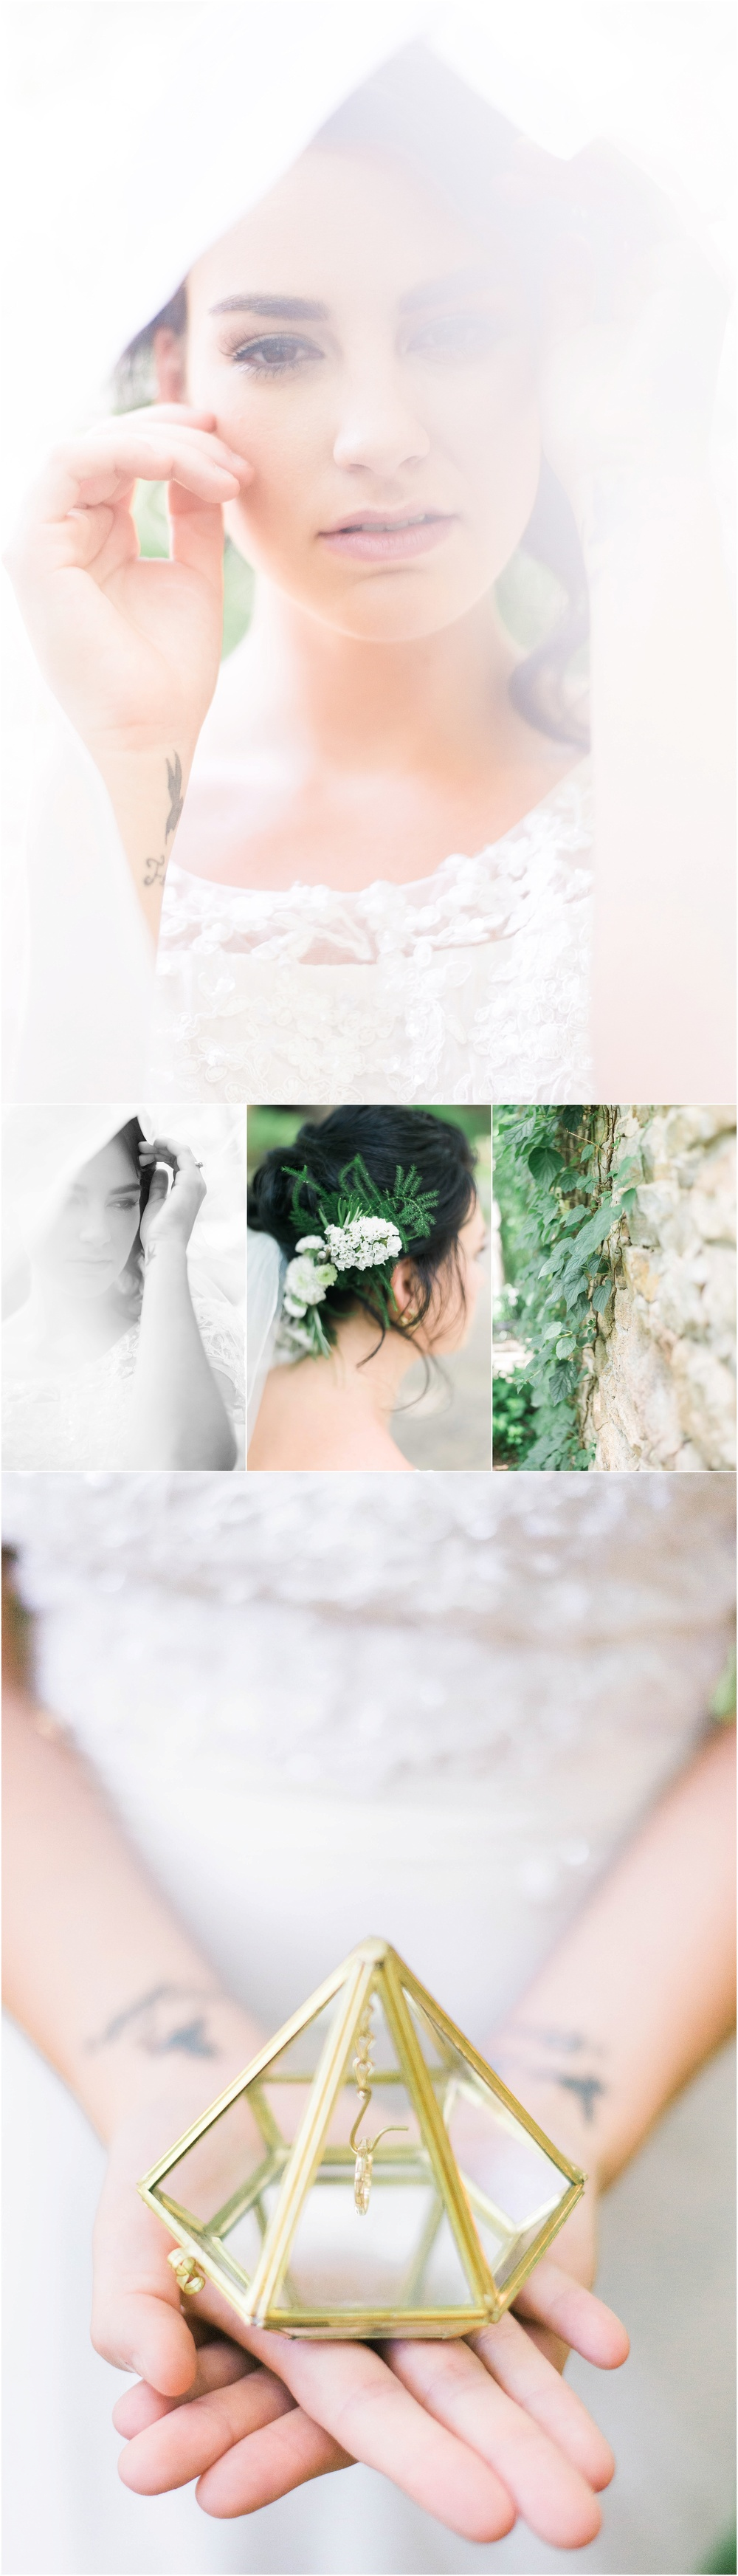 charlottesville_wedding Photographer_styled shoot_Style Me Pretty Feature0